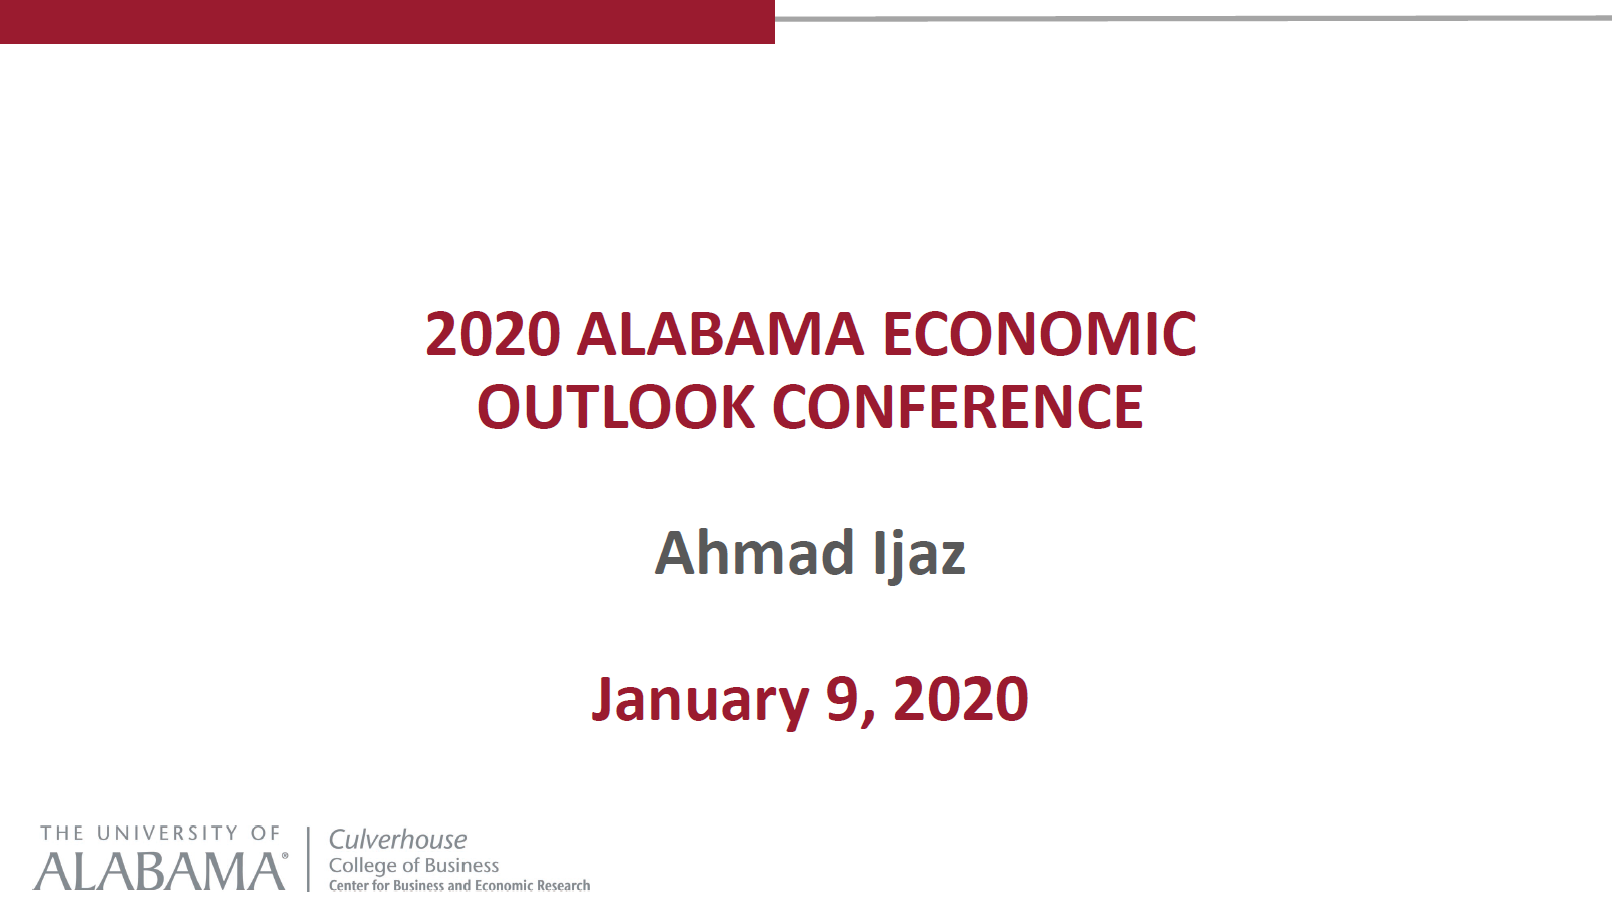 2020 Alabama Economic Outlook Presentation